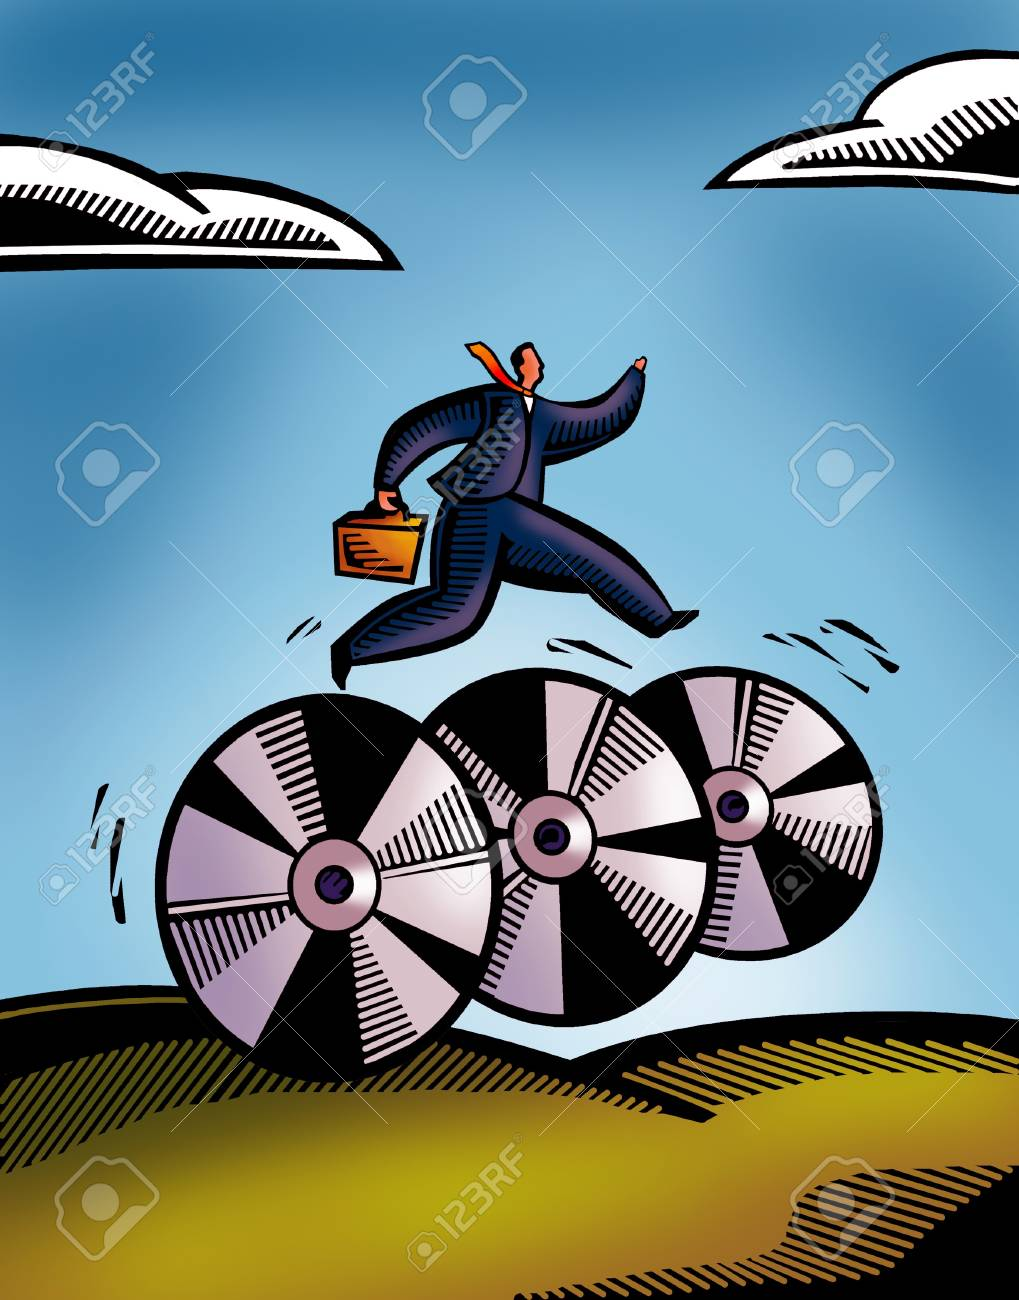 A picture of a business man rushing on wheels Stock Photo - 14887900